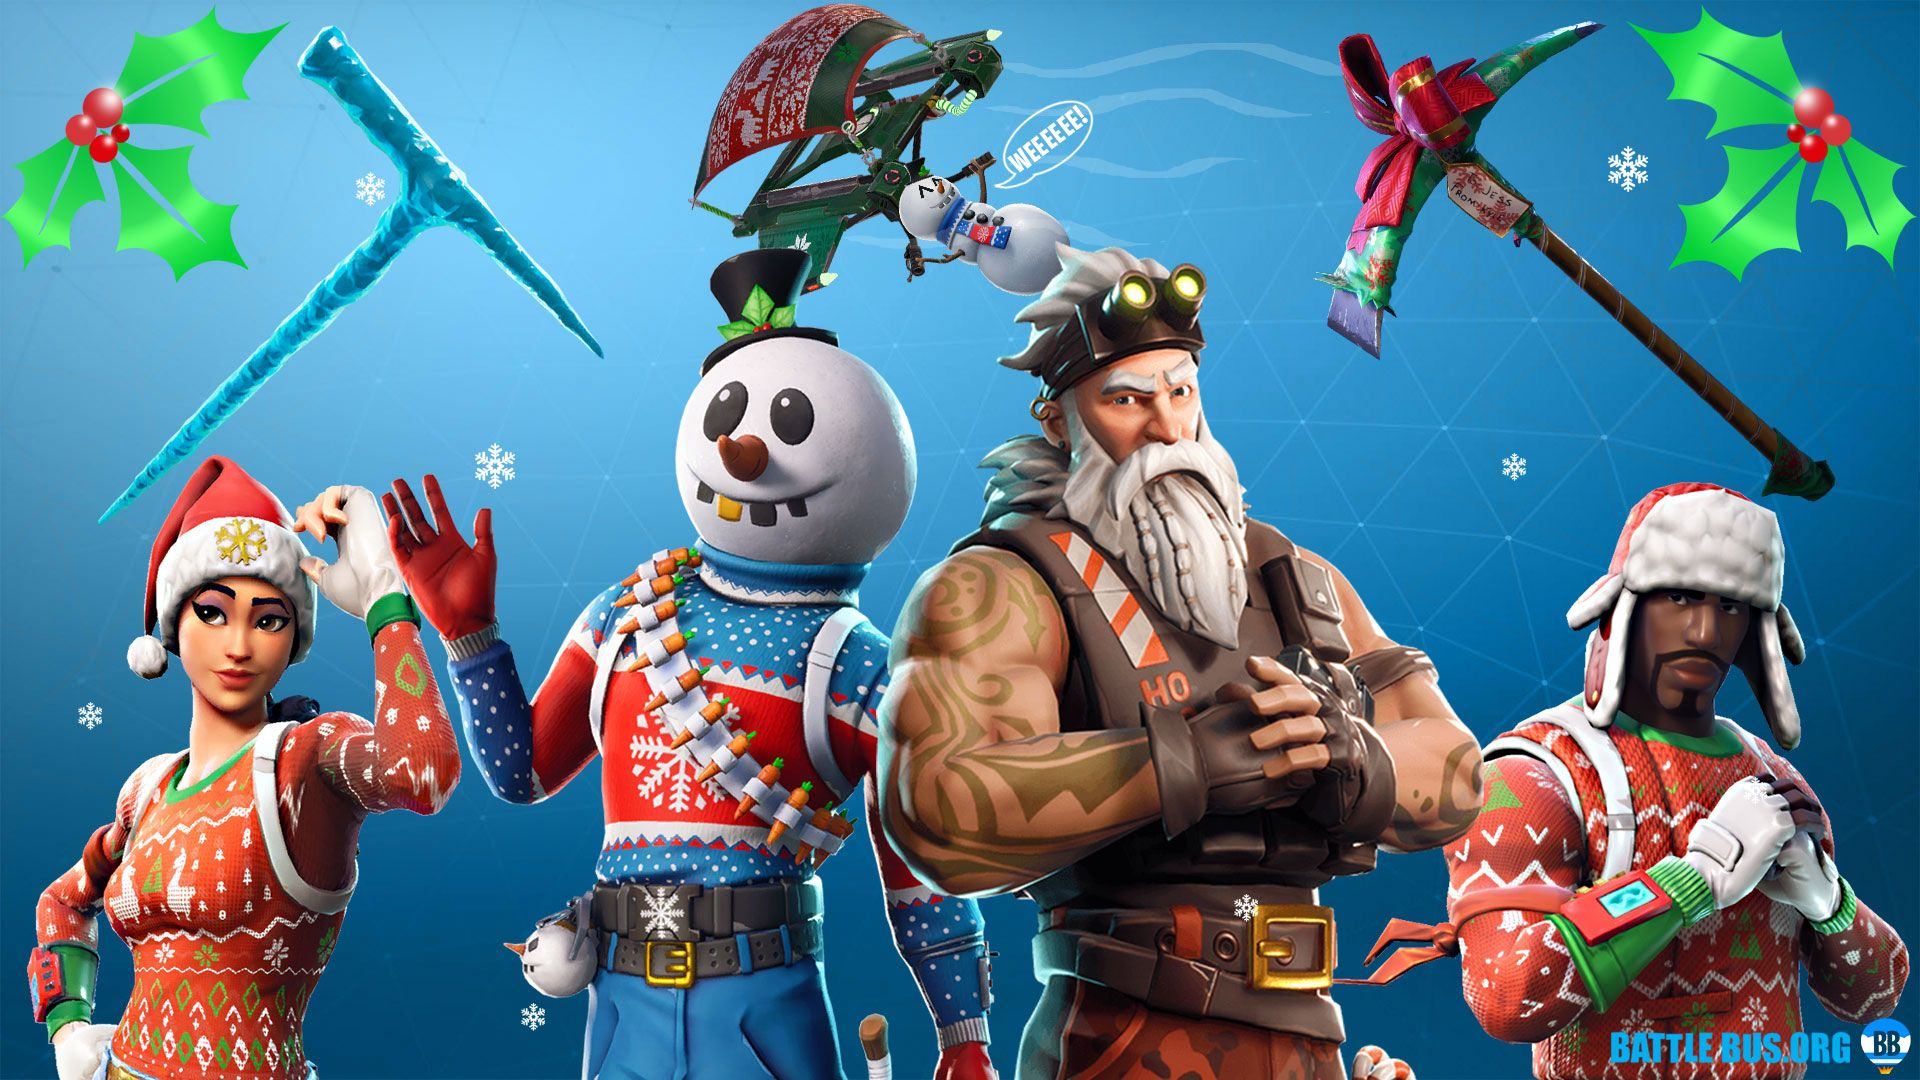 Fortnite Christmas Skins Wallpapers Top Free Fortnite Christmas Skins Backgrounds Wallpaperaccess Pastel is a female easter event costume for the game fortnite battle royale. fortnite christmas skins wallpapers